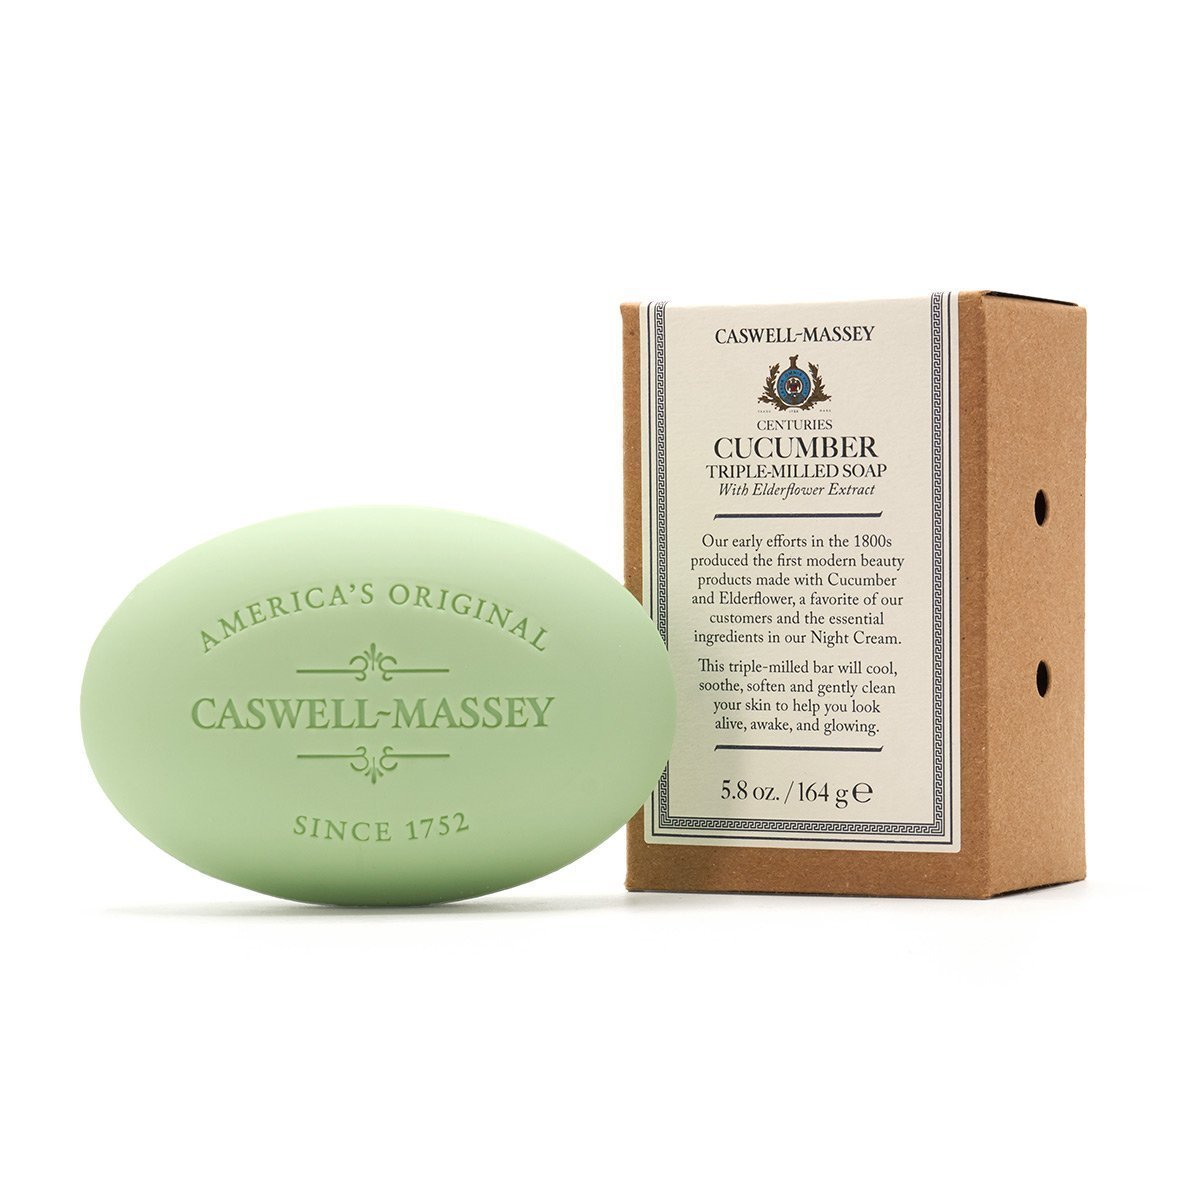 Caswell-Massey Cucumber and Elderflower Single Soap (5.8 oz)